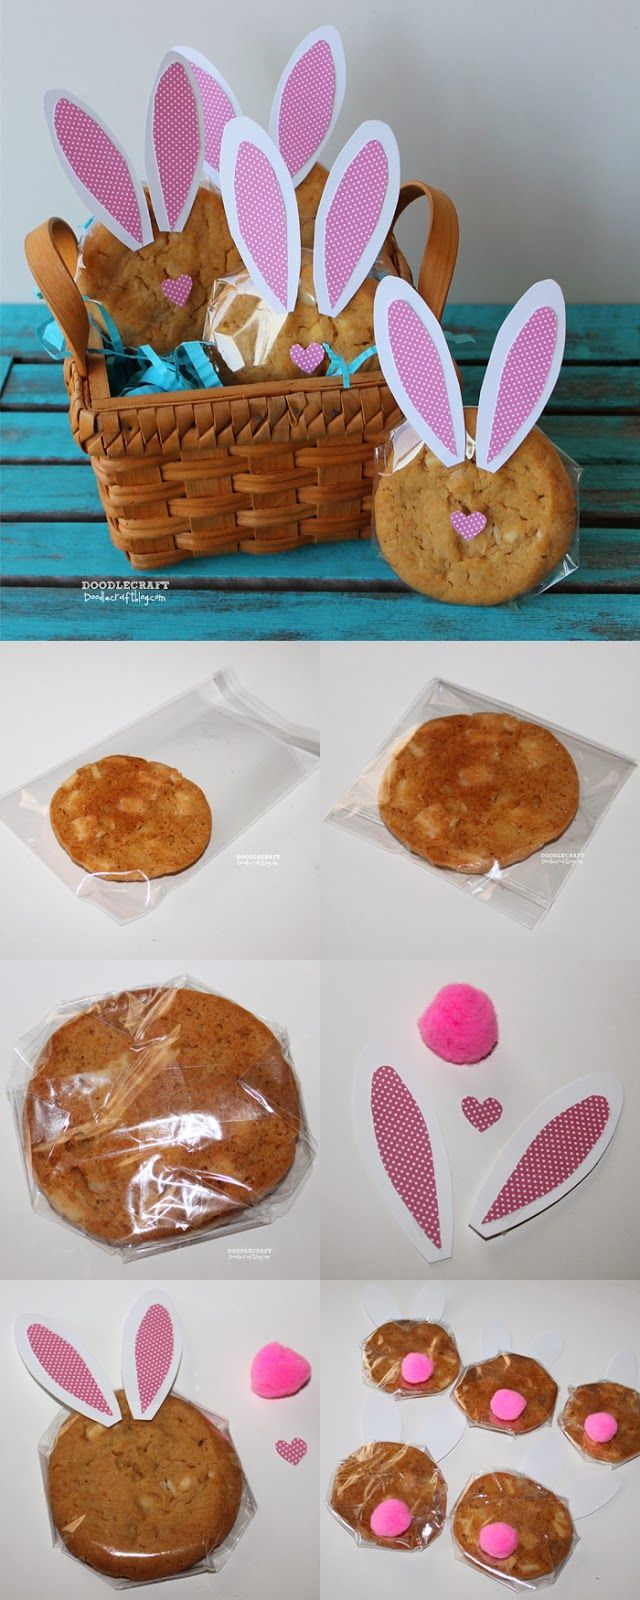 47 best gift ideas for easter images on pinterest easter food cookies bunny ear cutouts a basket cellophane and a fuzzy tail and youre all set for easter thanks doodlecraft negle Images